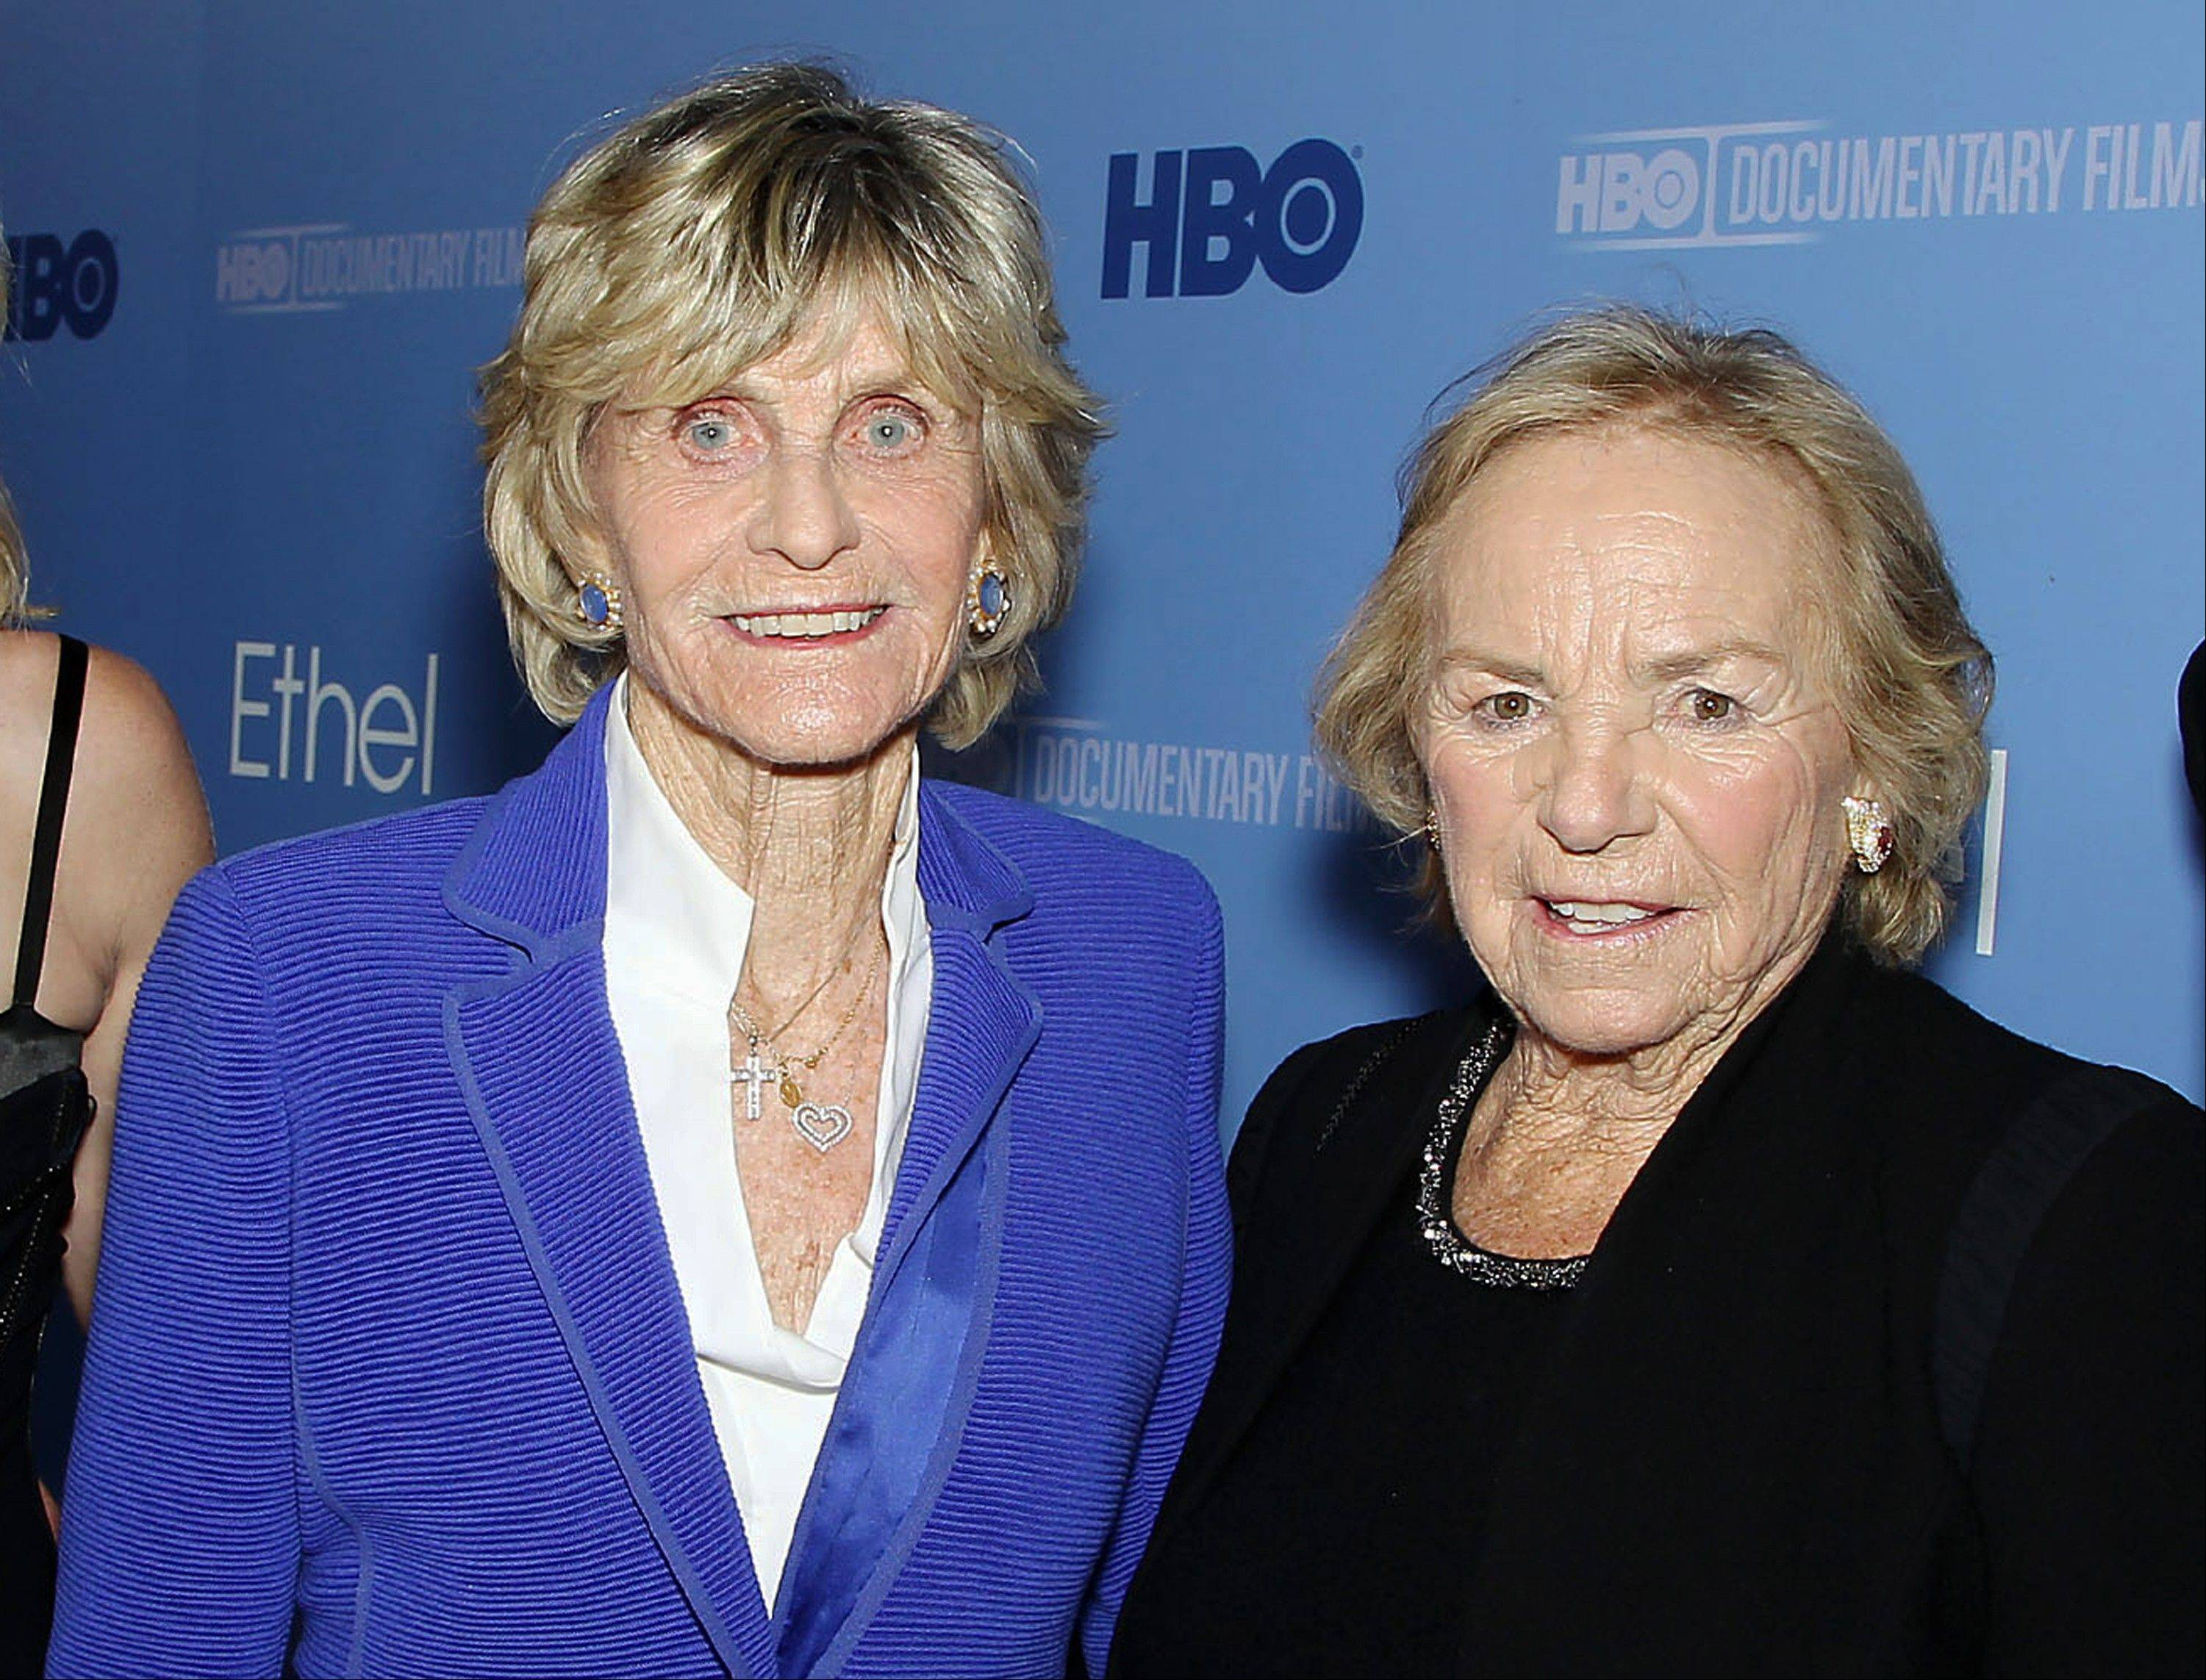 "Jean Kennedy-Smith, left, and Ethel Kennedy at the premiere for the documentary, ""Ethel: A First-Hand Look Inside The Kennedy Family,"" in New York. The film, about Ethel Kennedy, wife of the late Robert F. Kennedy, debuts on HBO."